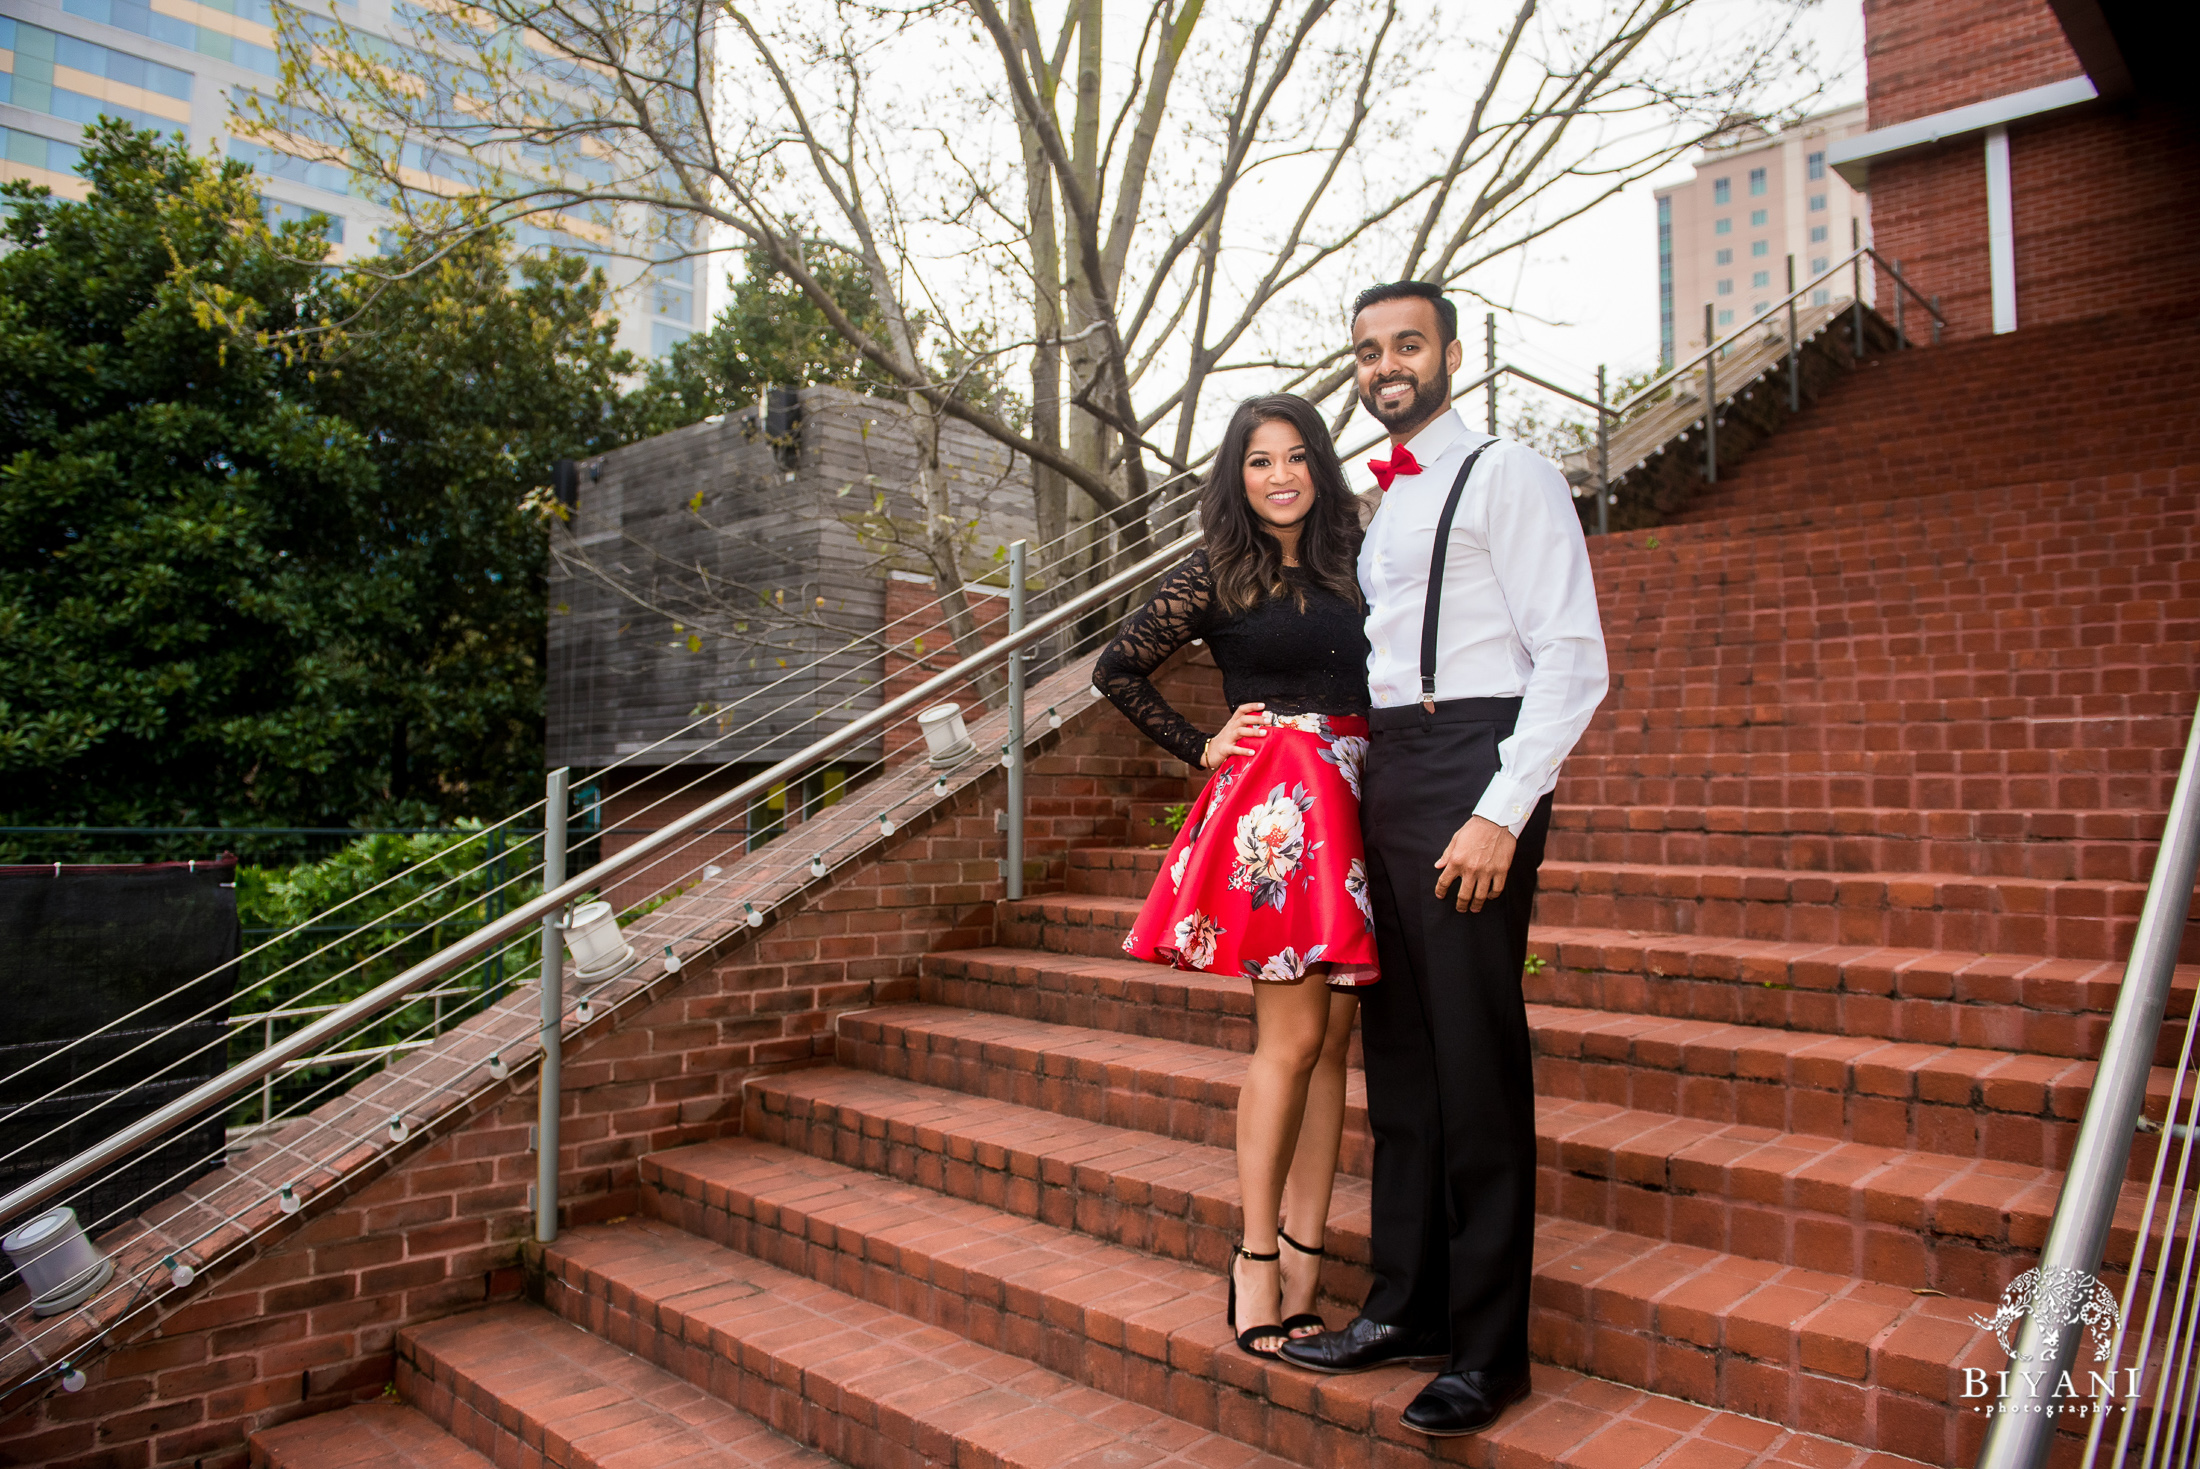 Sri Lankan couple standing on staircase during an engagement photo shoot in Houston, Tx. Discovery Green Park